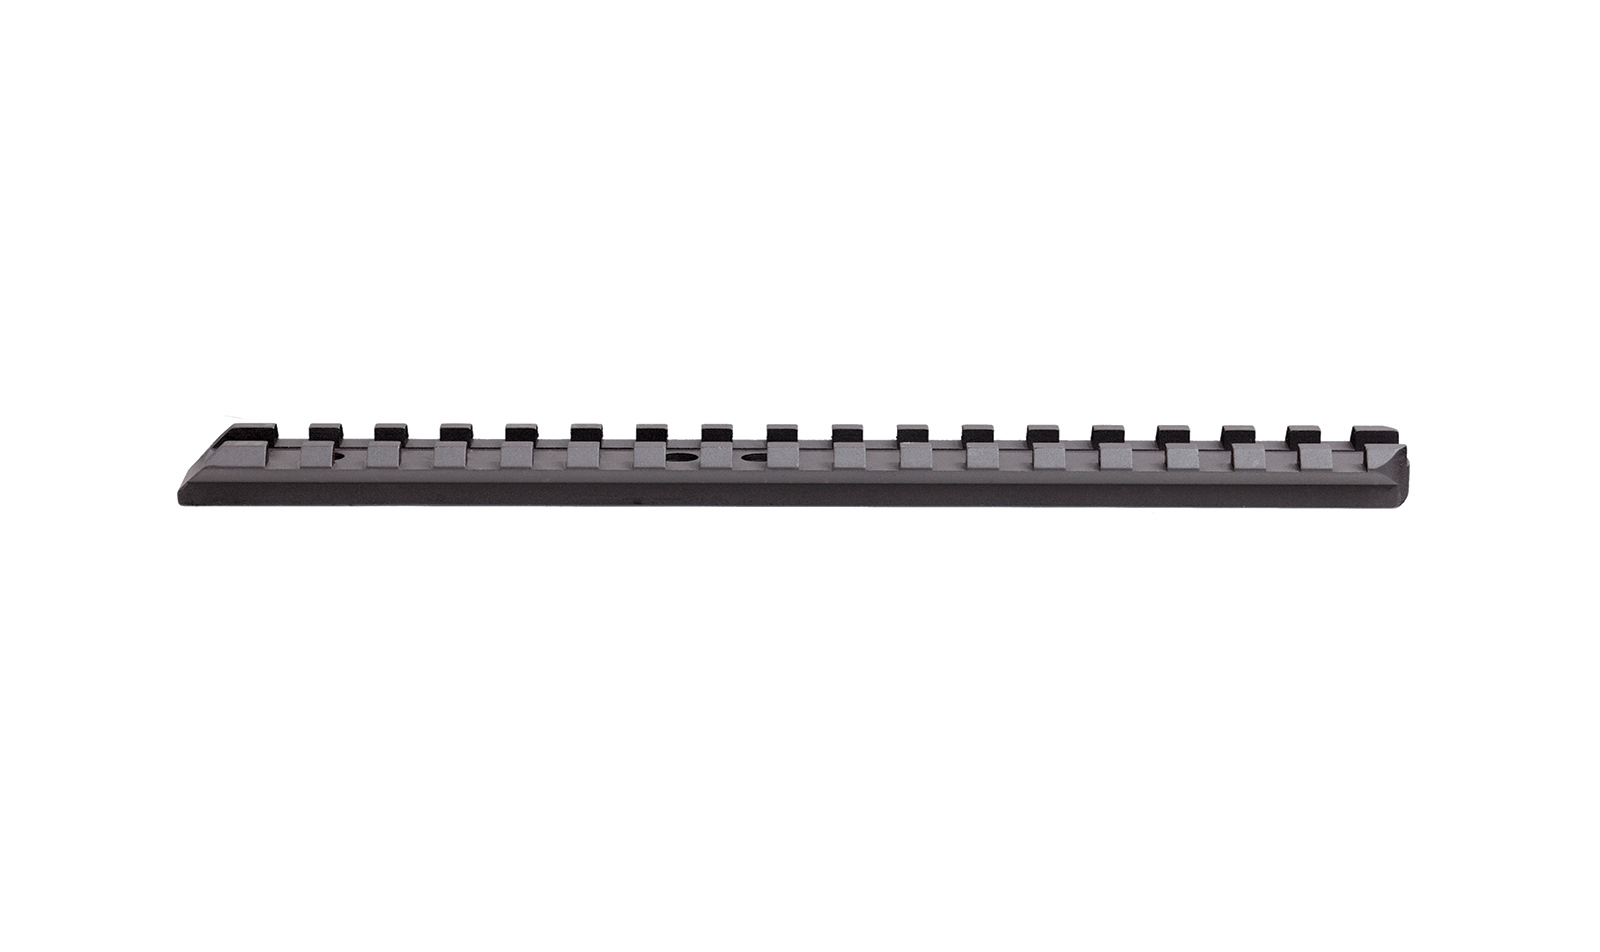 Full 1913 Picatinny Aluminum Rail for Mossberg® 590 Shotgun